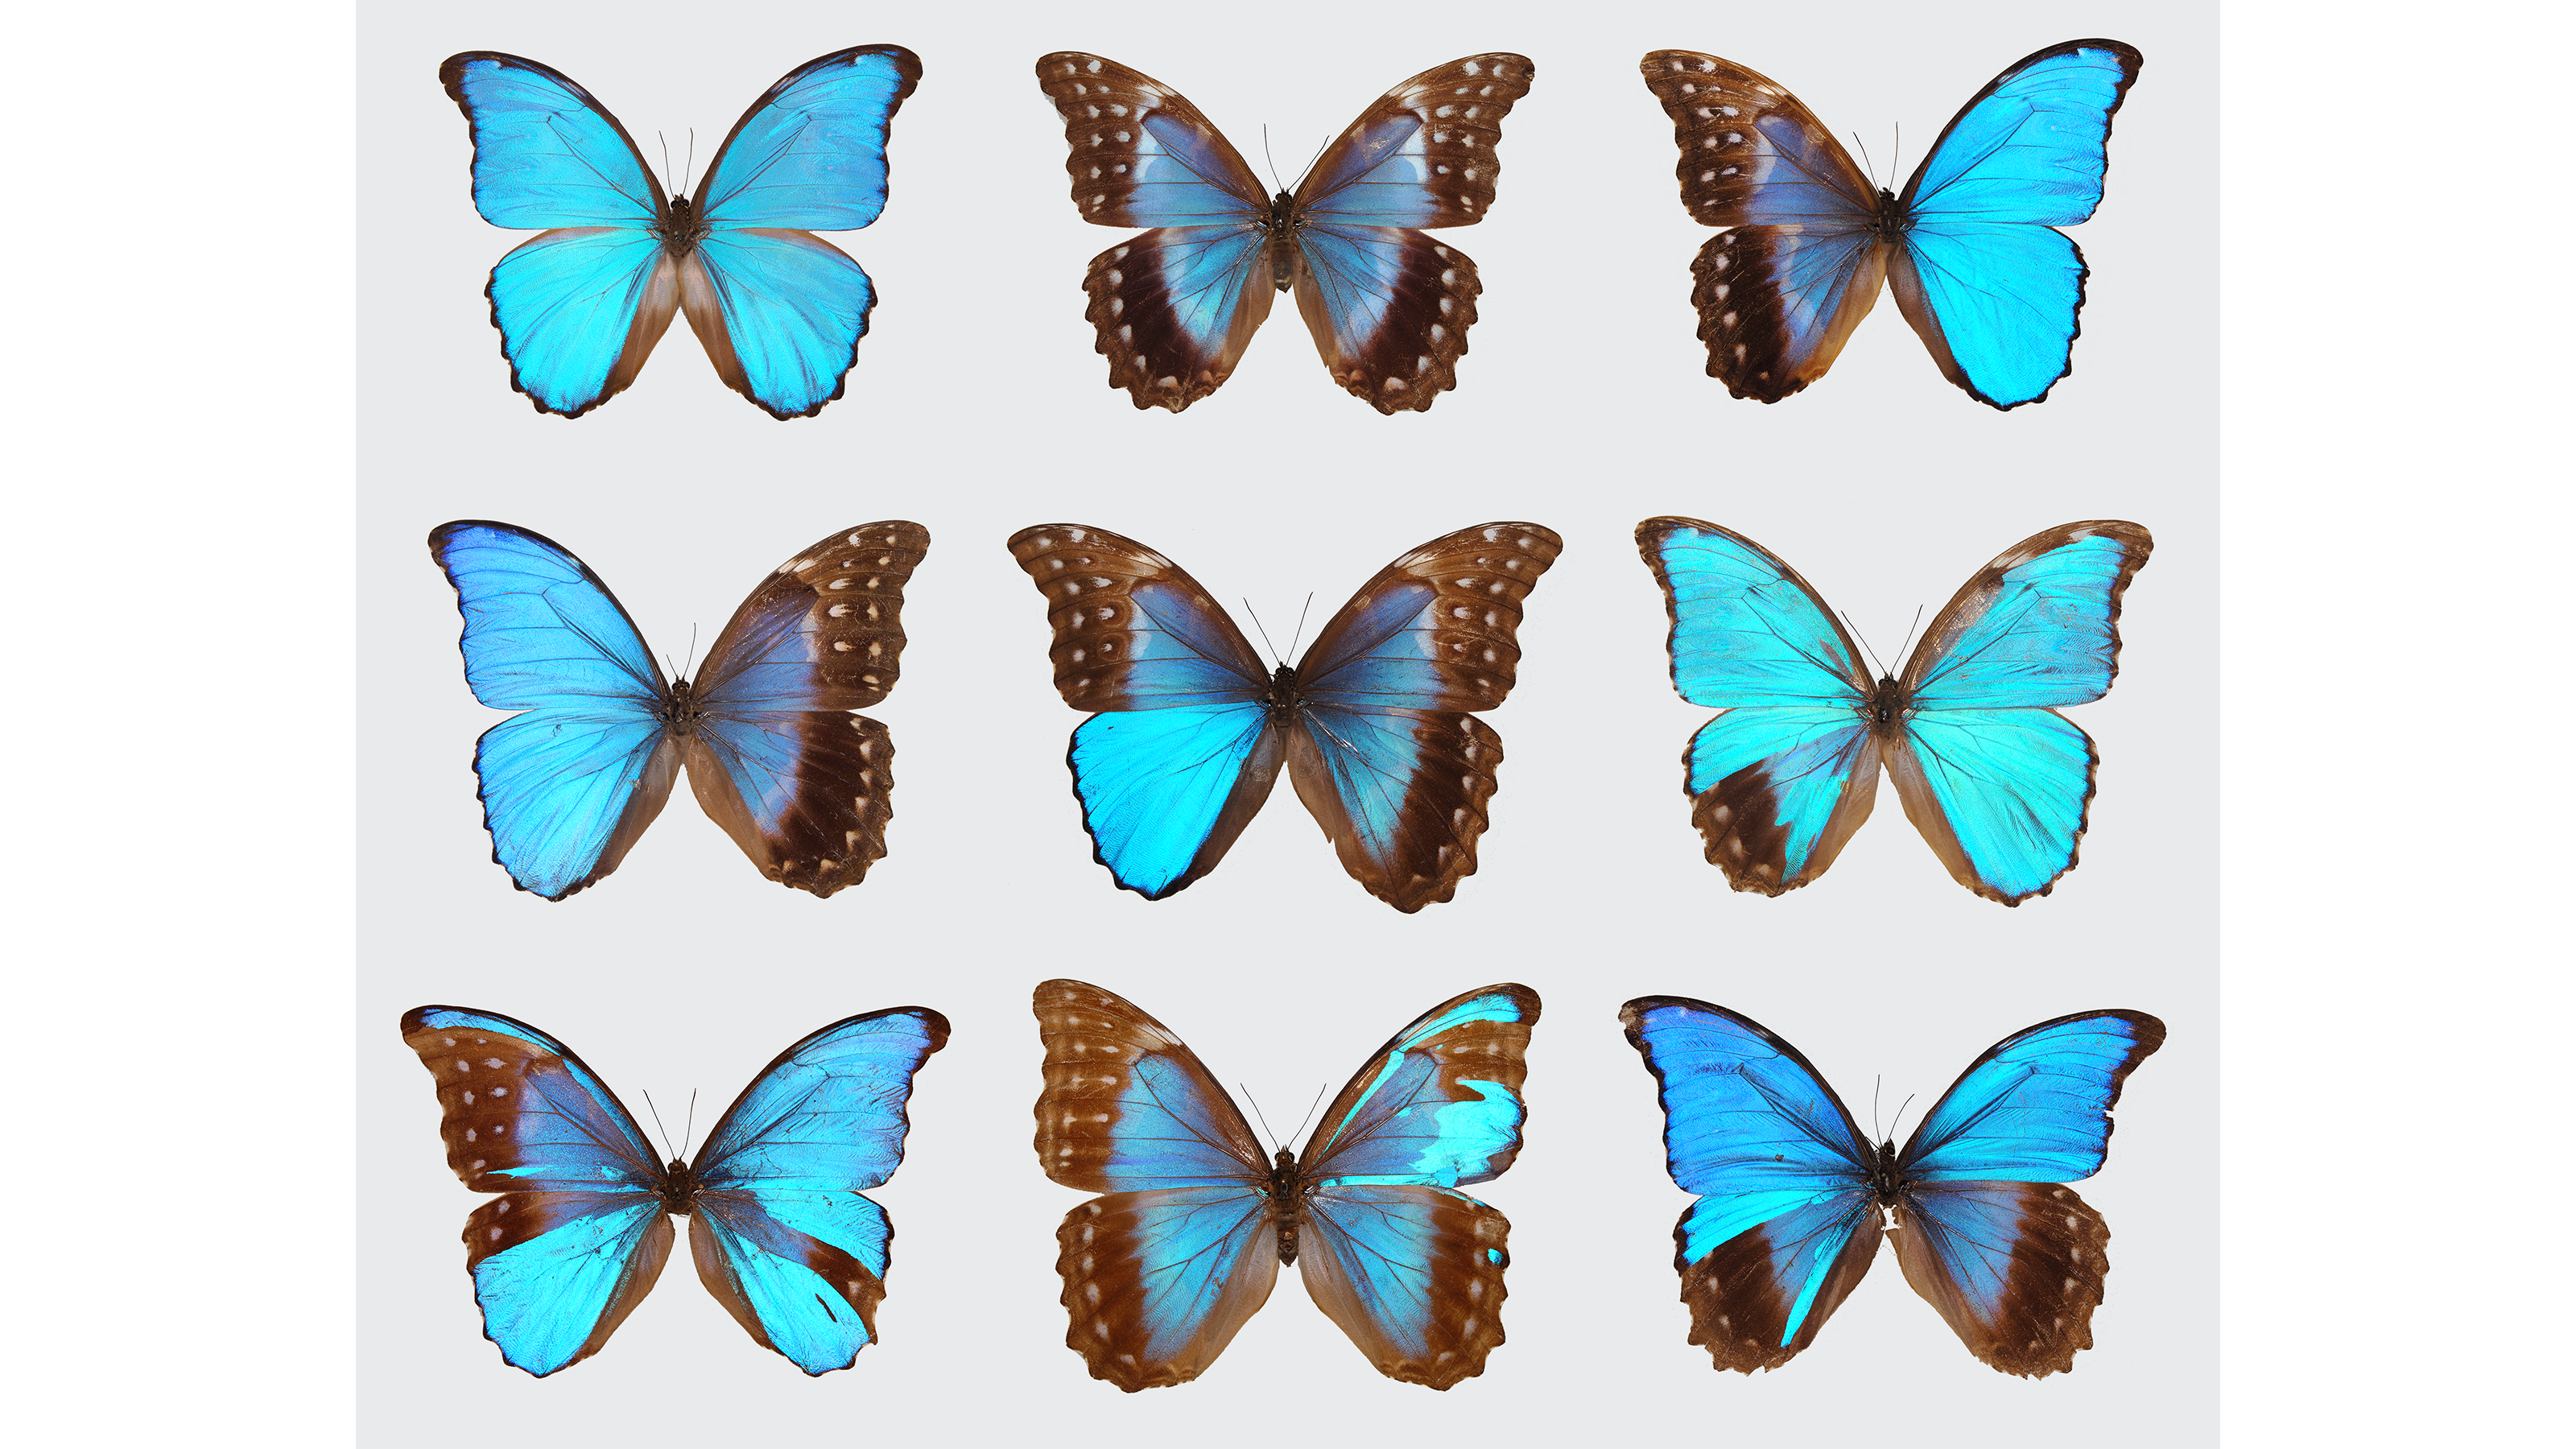 These butterflies aren't ordinary males and females